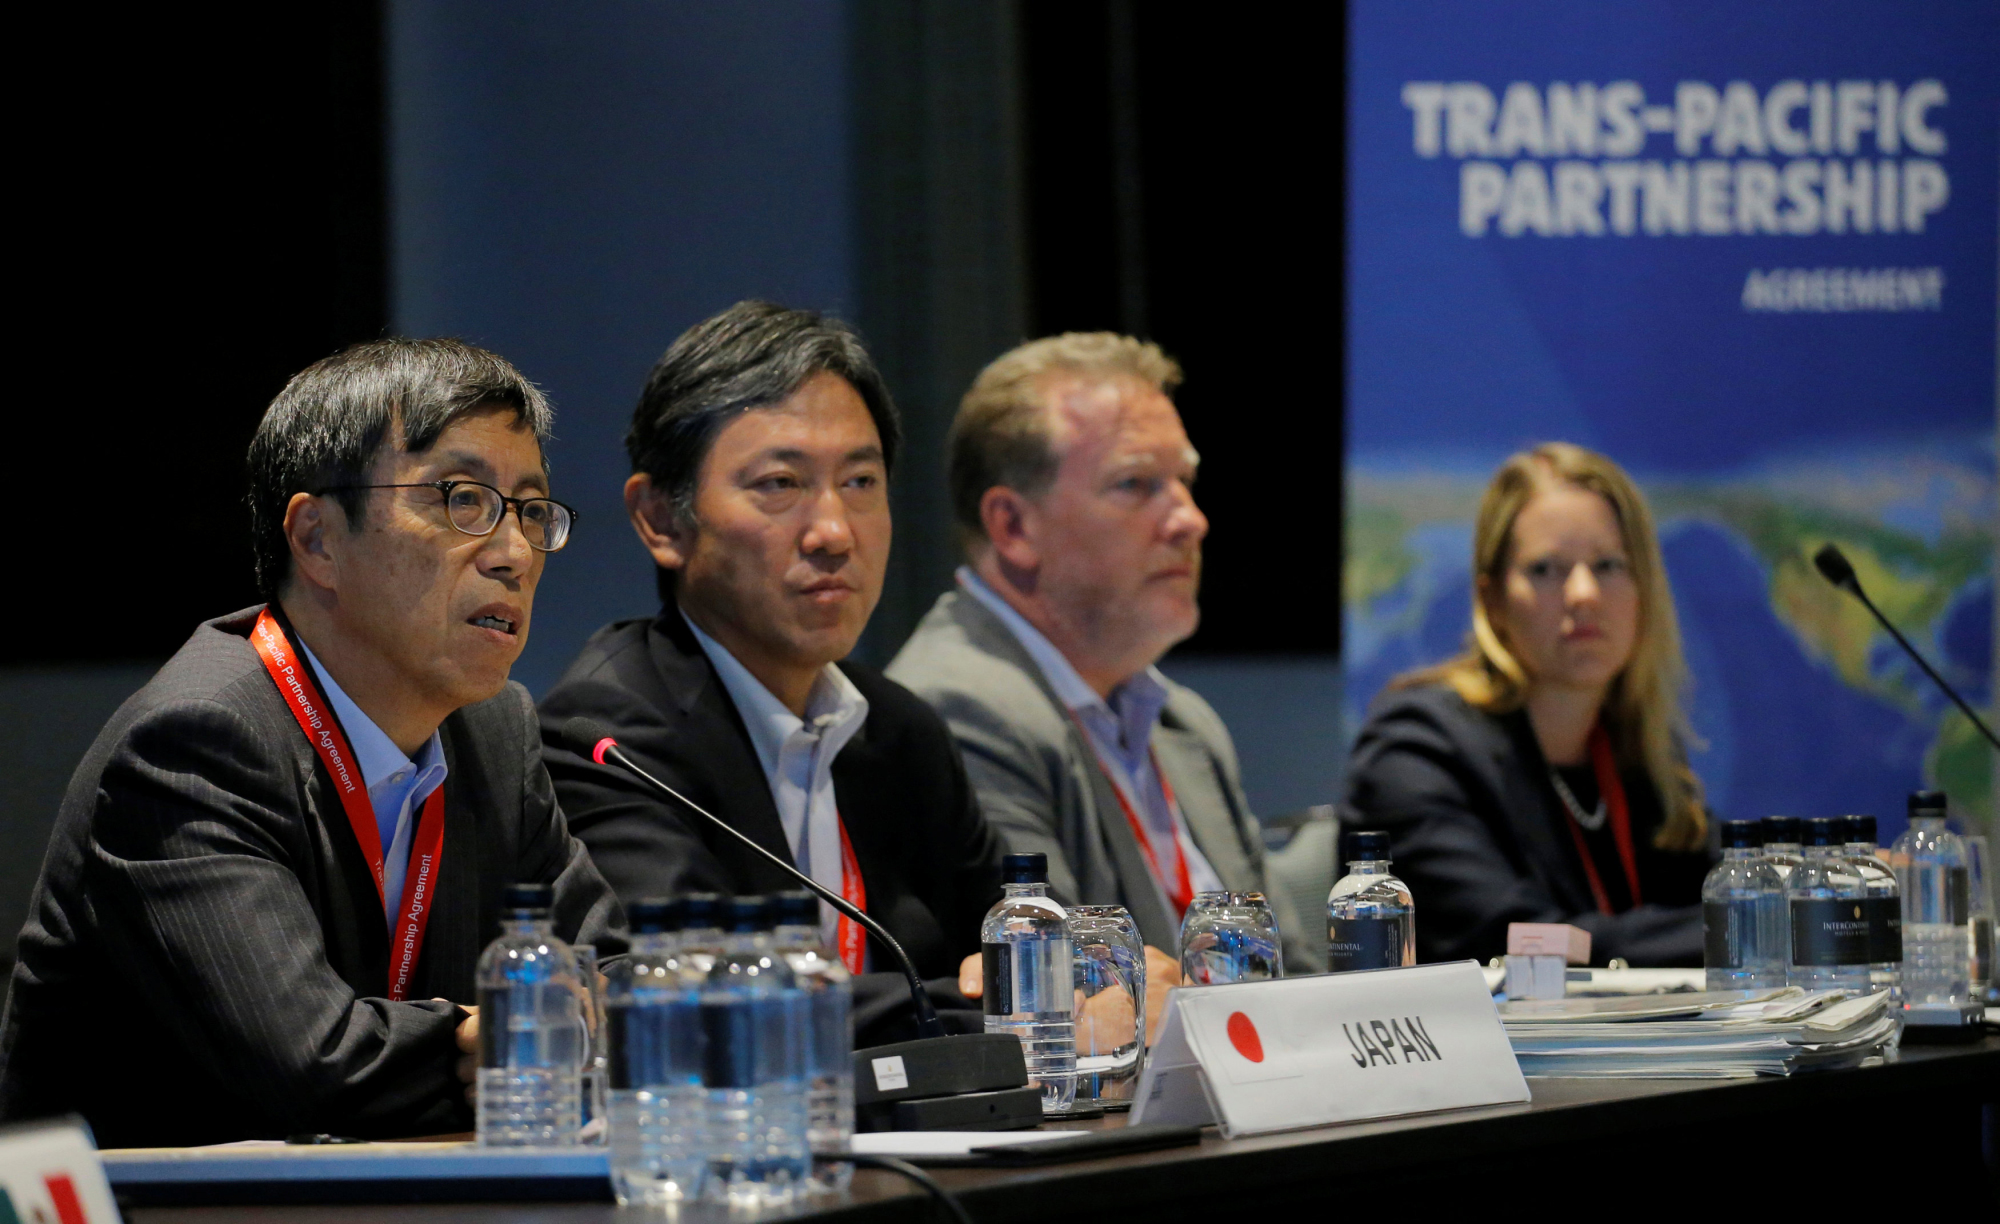 Japan's chief trade negotiator, Kazuyoshi Umemoto (left) speaks at the Trans-Pacific Partnership seniors leaders meeting in Sydney on Thursday. Had the United States stayed in the TPP, it would have been the first true 21st century trade agreement. | REUTERS